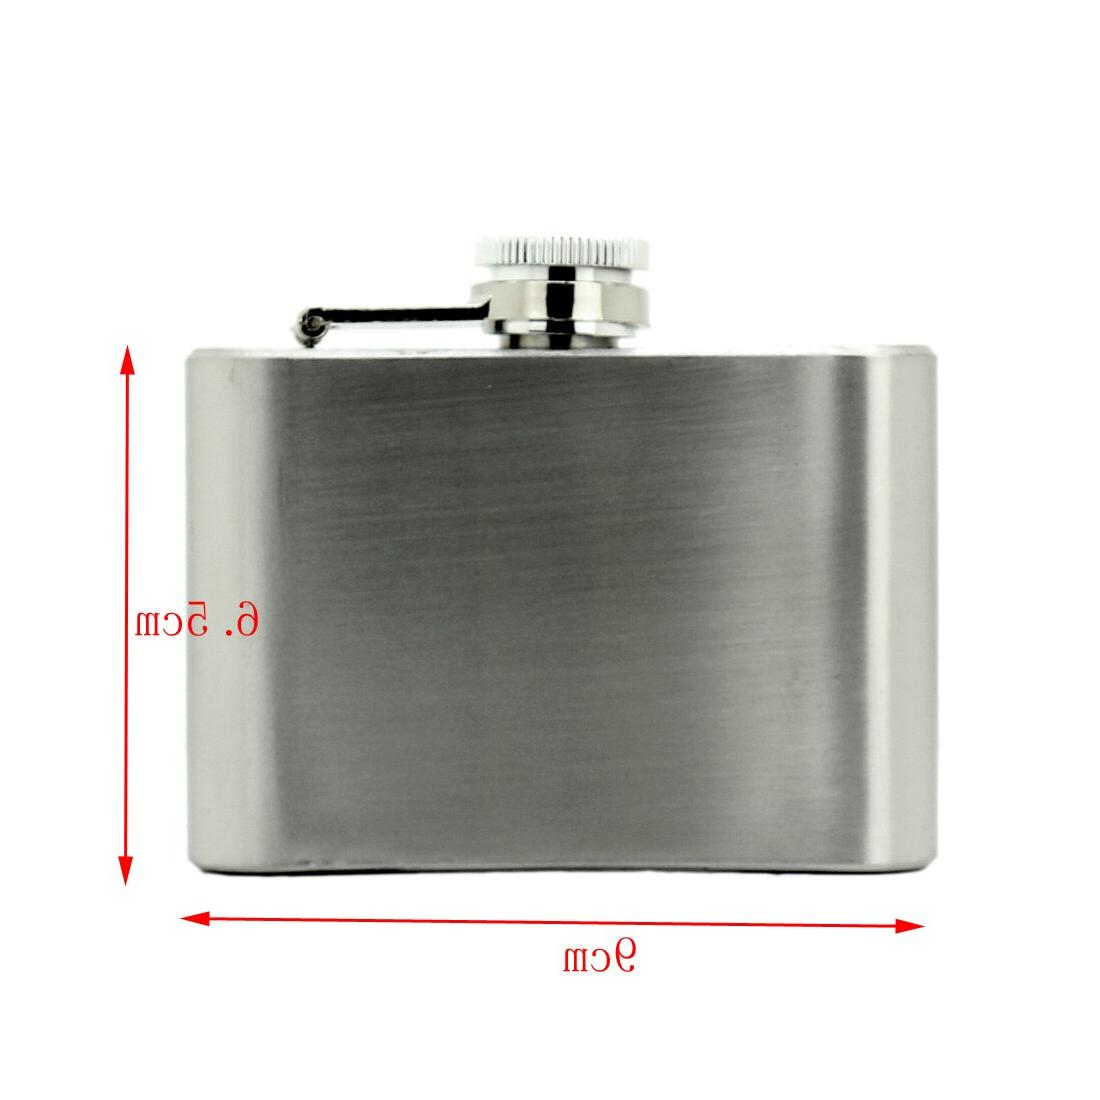 Portable Stainless Steel Flask 18 10 7 <font><b>oz</b></font> Alcohol Cap Wine Mug